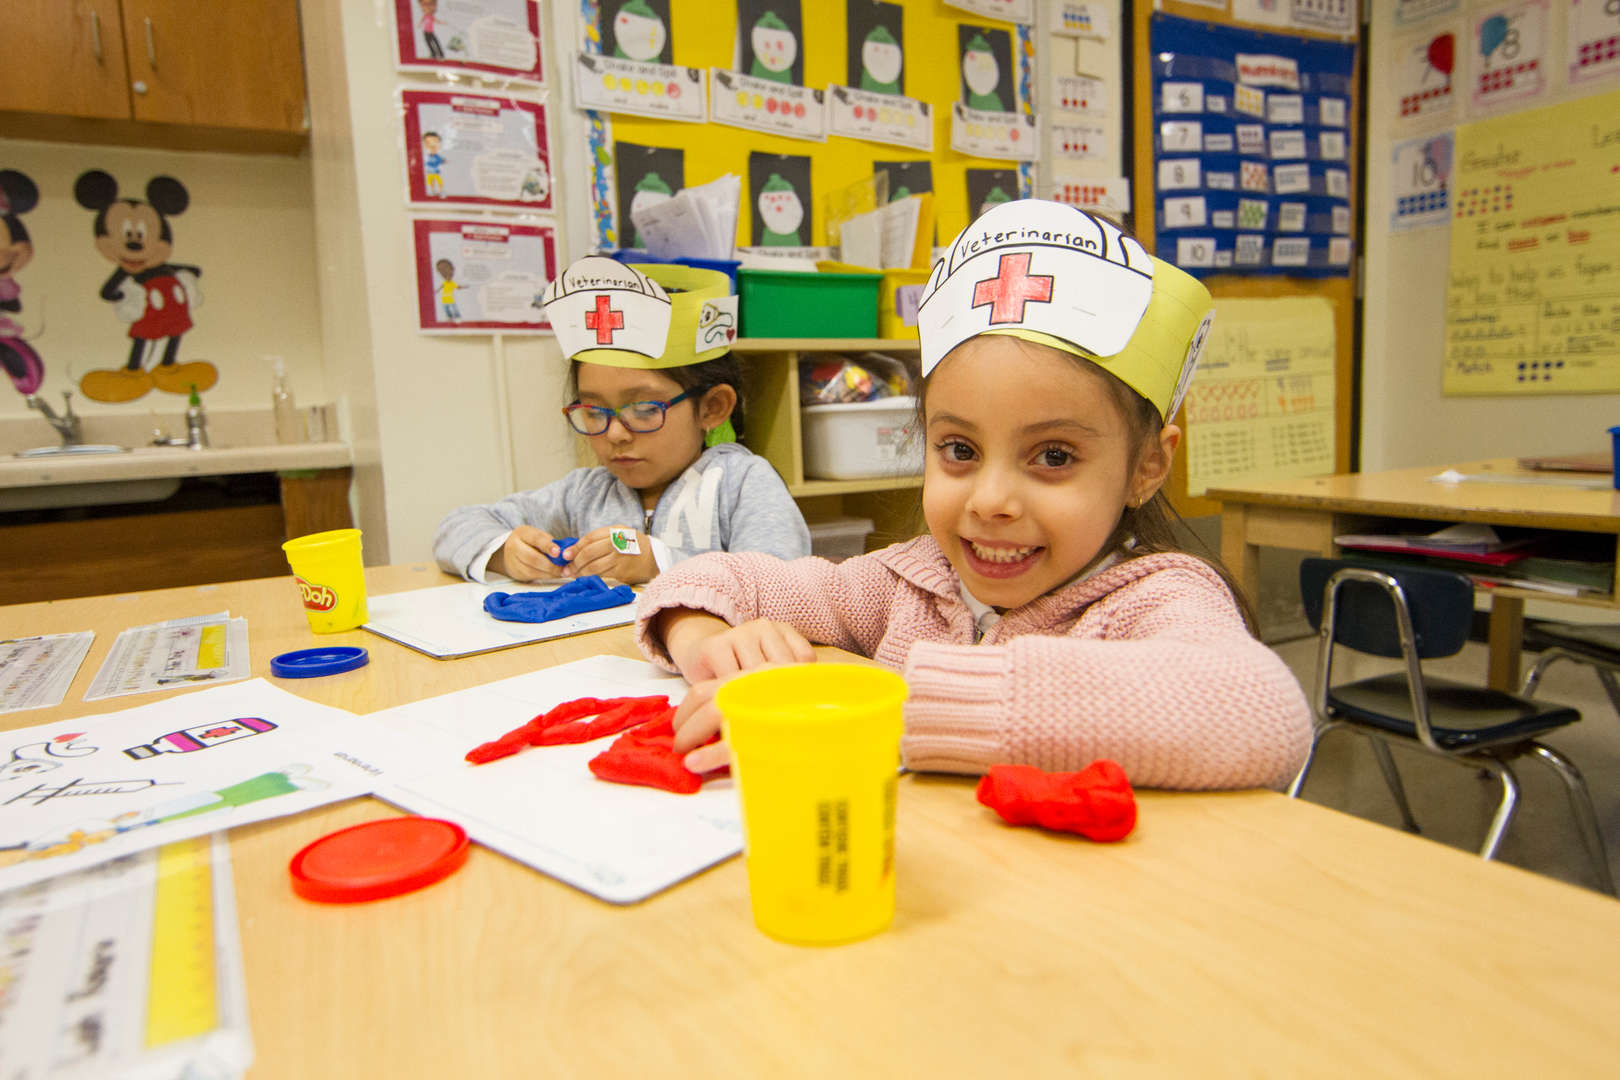 Kindergarteners playing with play-doh